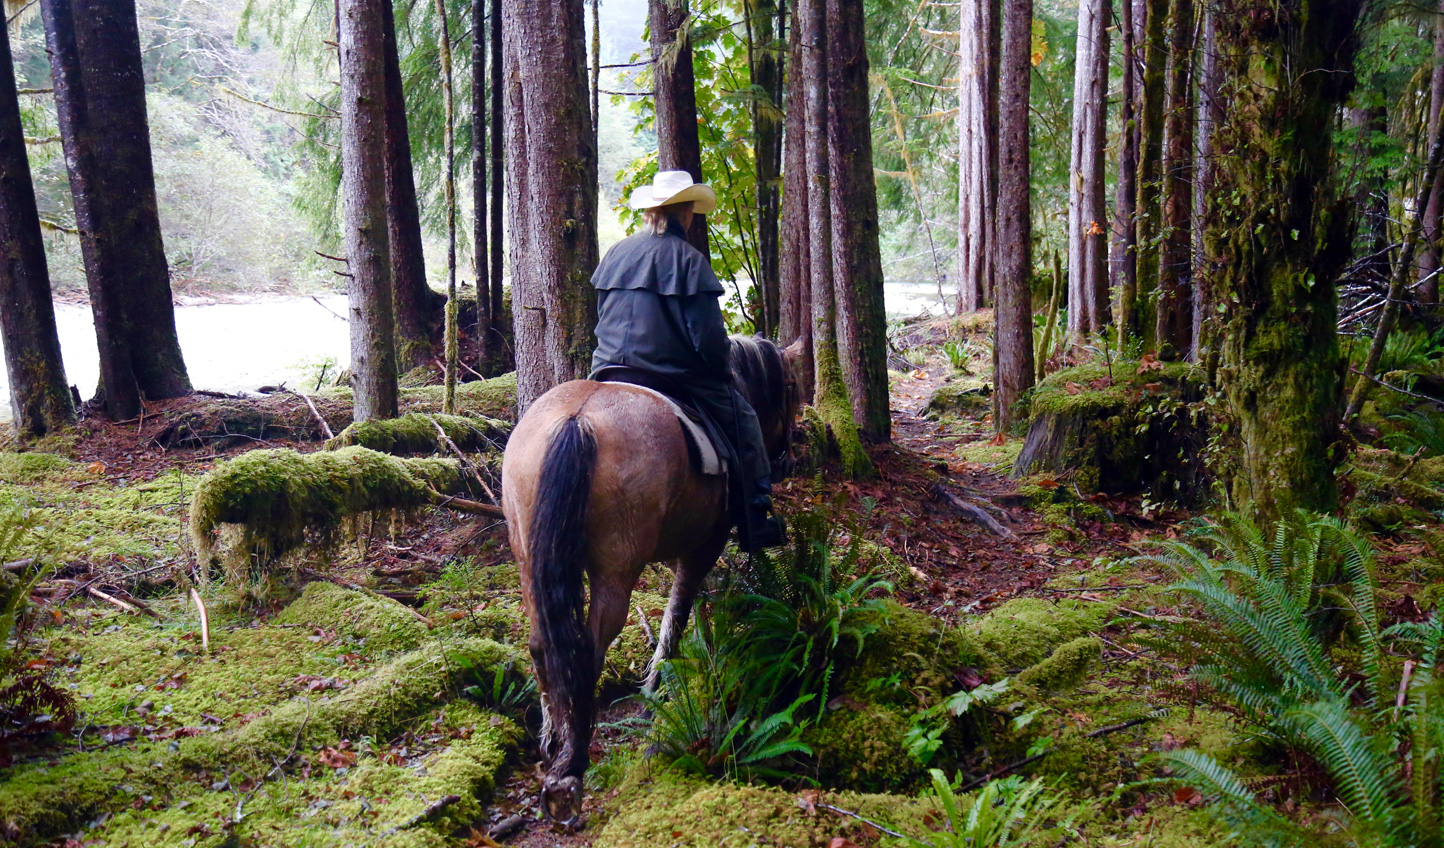 Set off on a horseriding trail through the forest